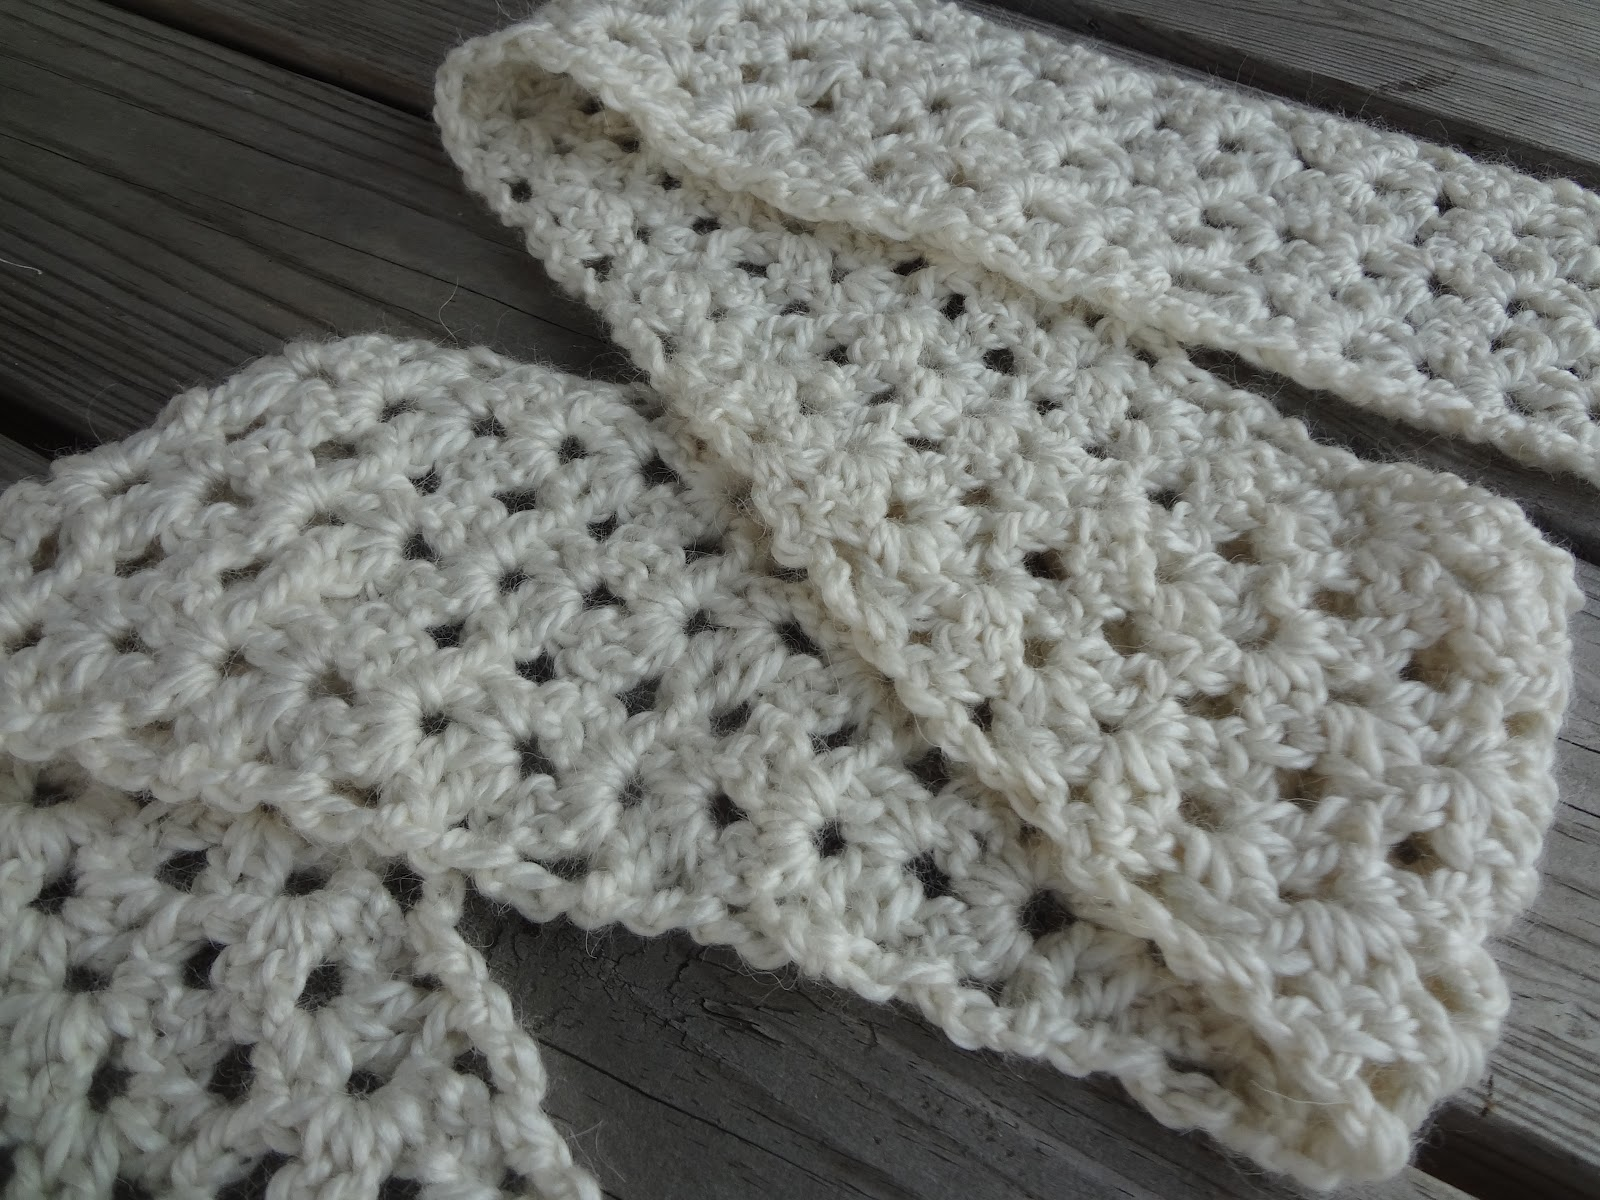 ... for gifting and suitable for beginner and seasoned crocheters alike